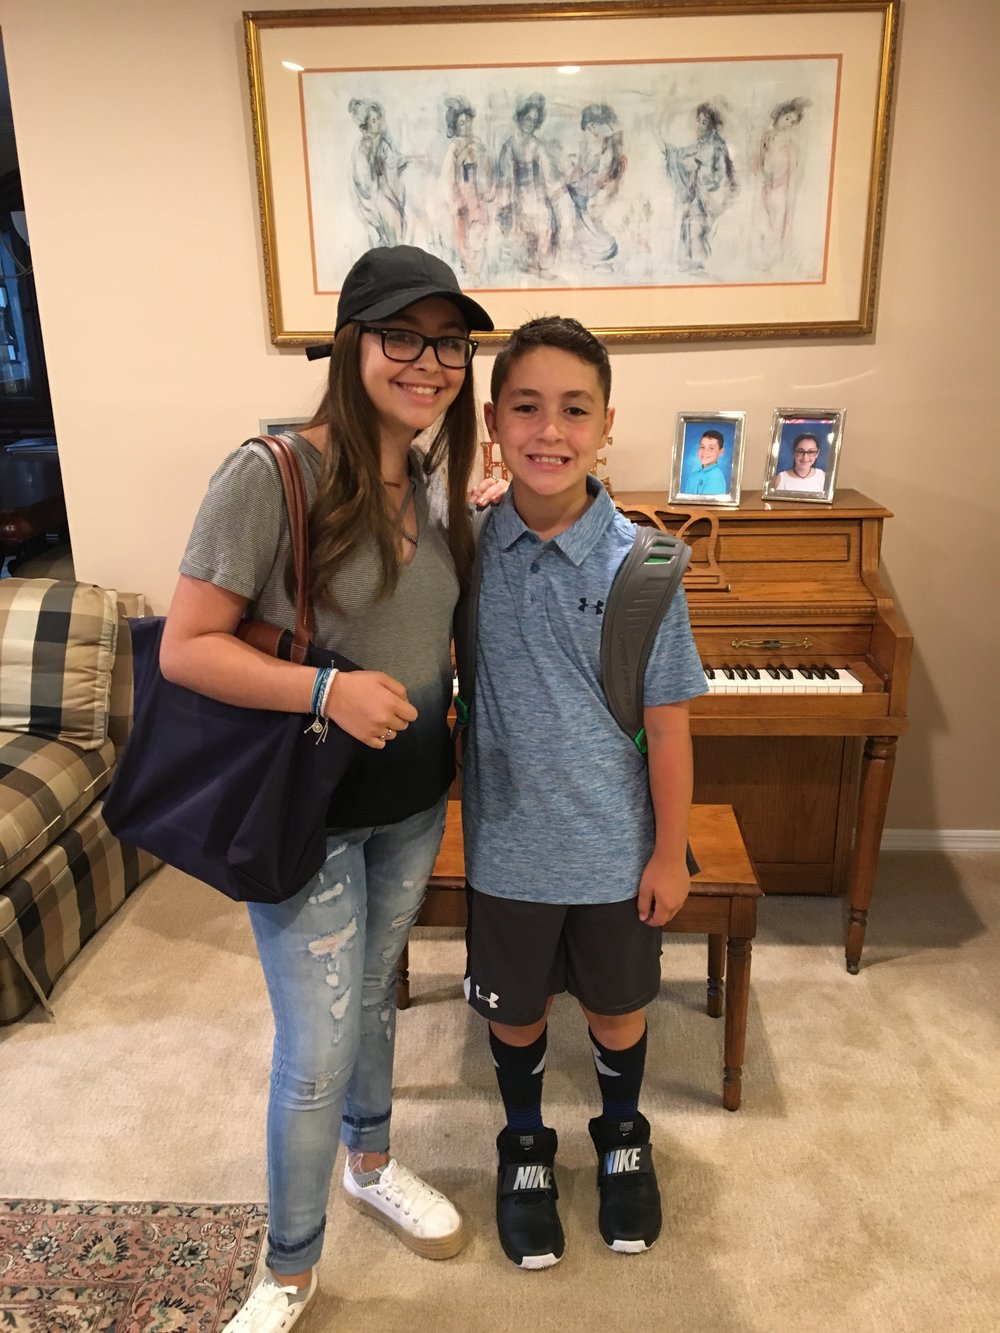 Always thinking of others, Rachel took this picture for her brother on his first day of school one day before resuming her treatment.